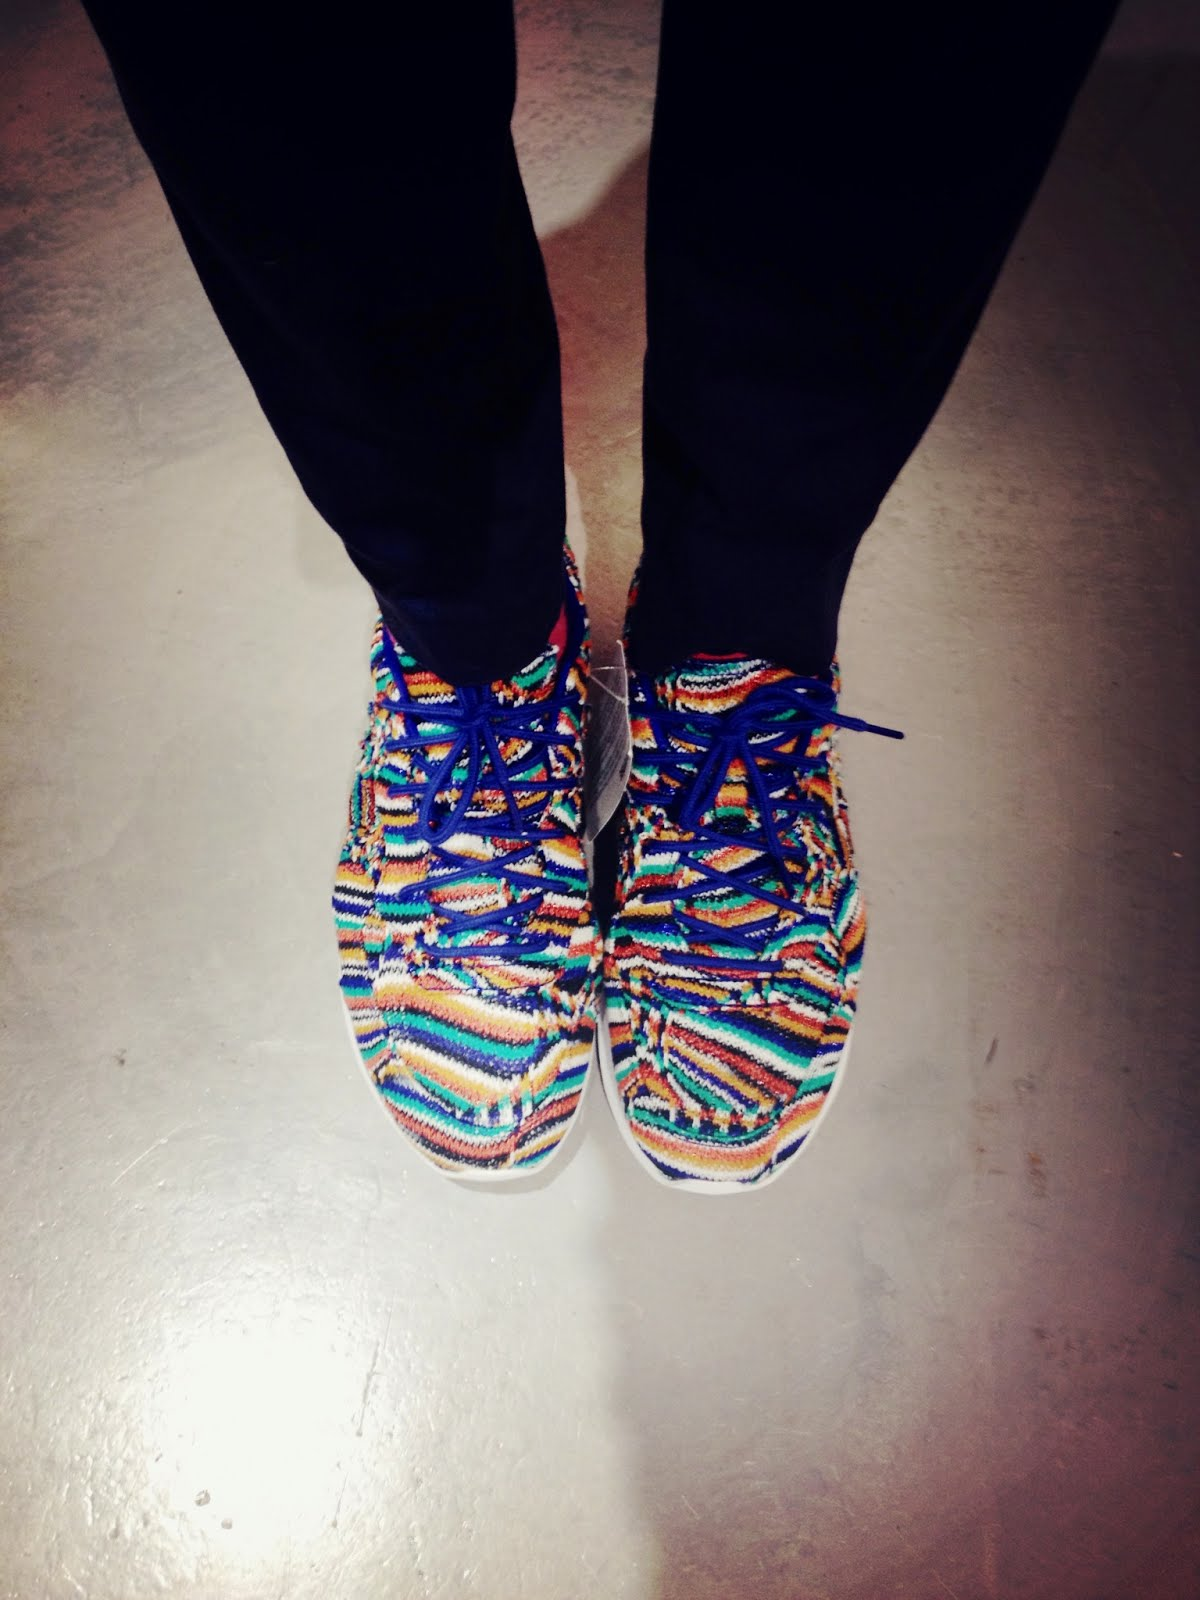 00O00 Menswear Blog Missoni Converse Auckland Racer sneakers